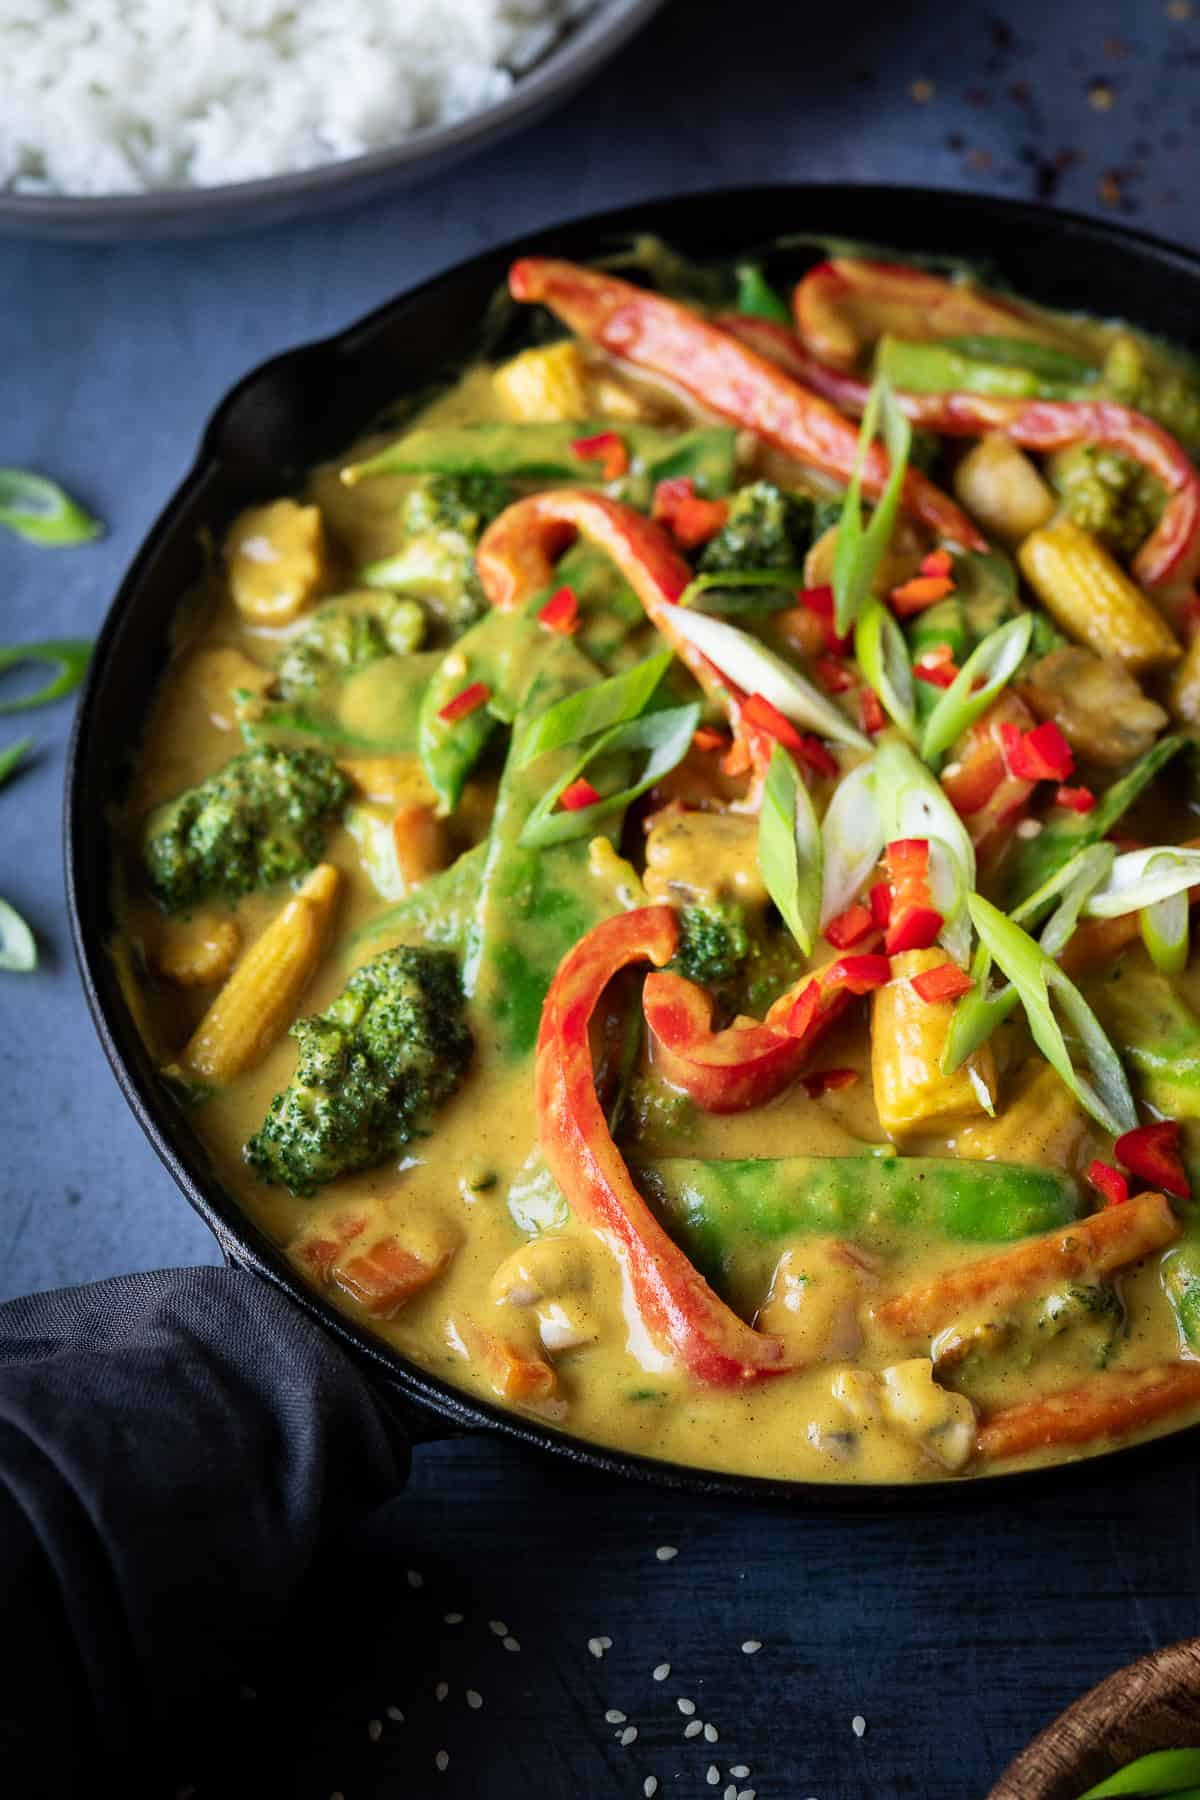 Close up of Chinese vegetable curry in a black skillet.